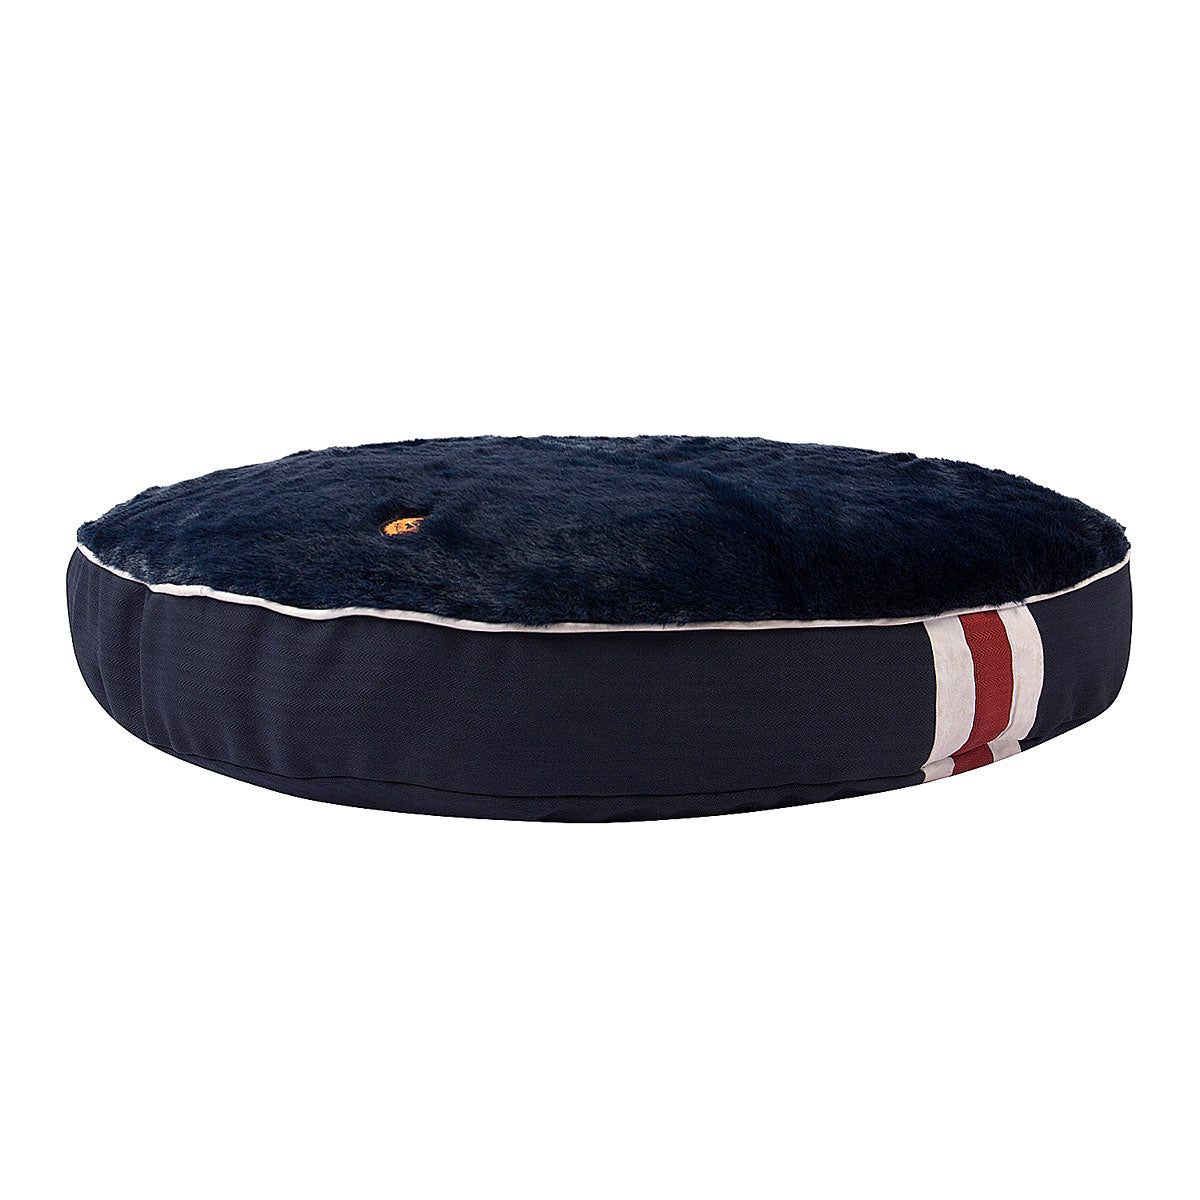 Halo Sam Round Dog Bed_2676